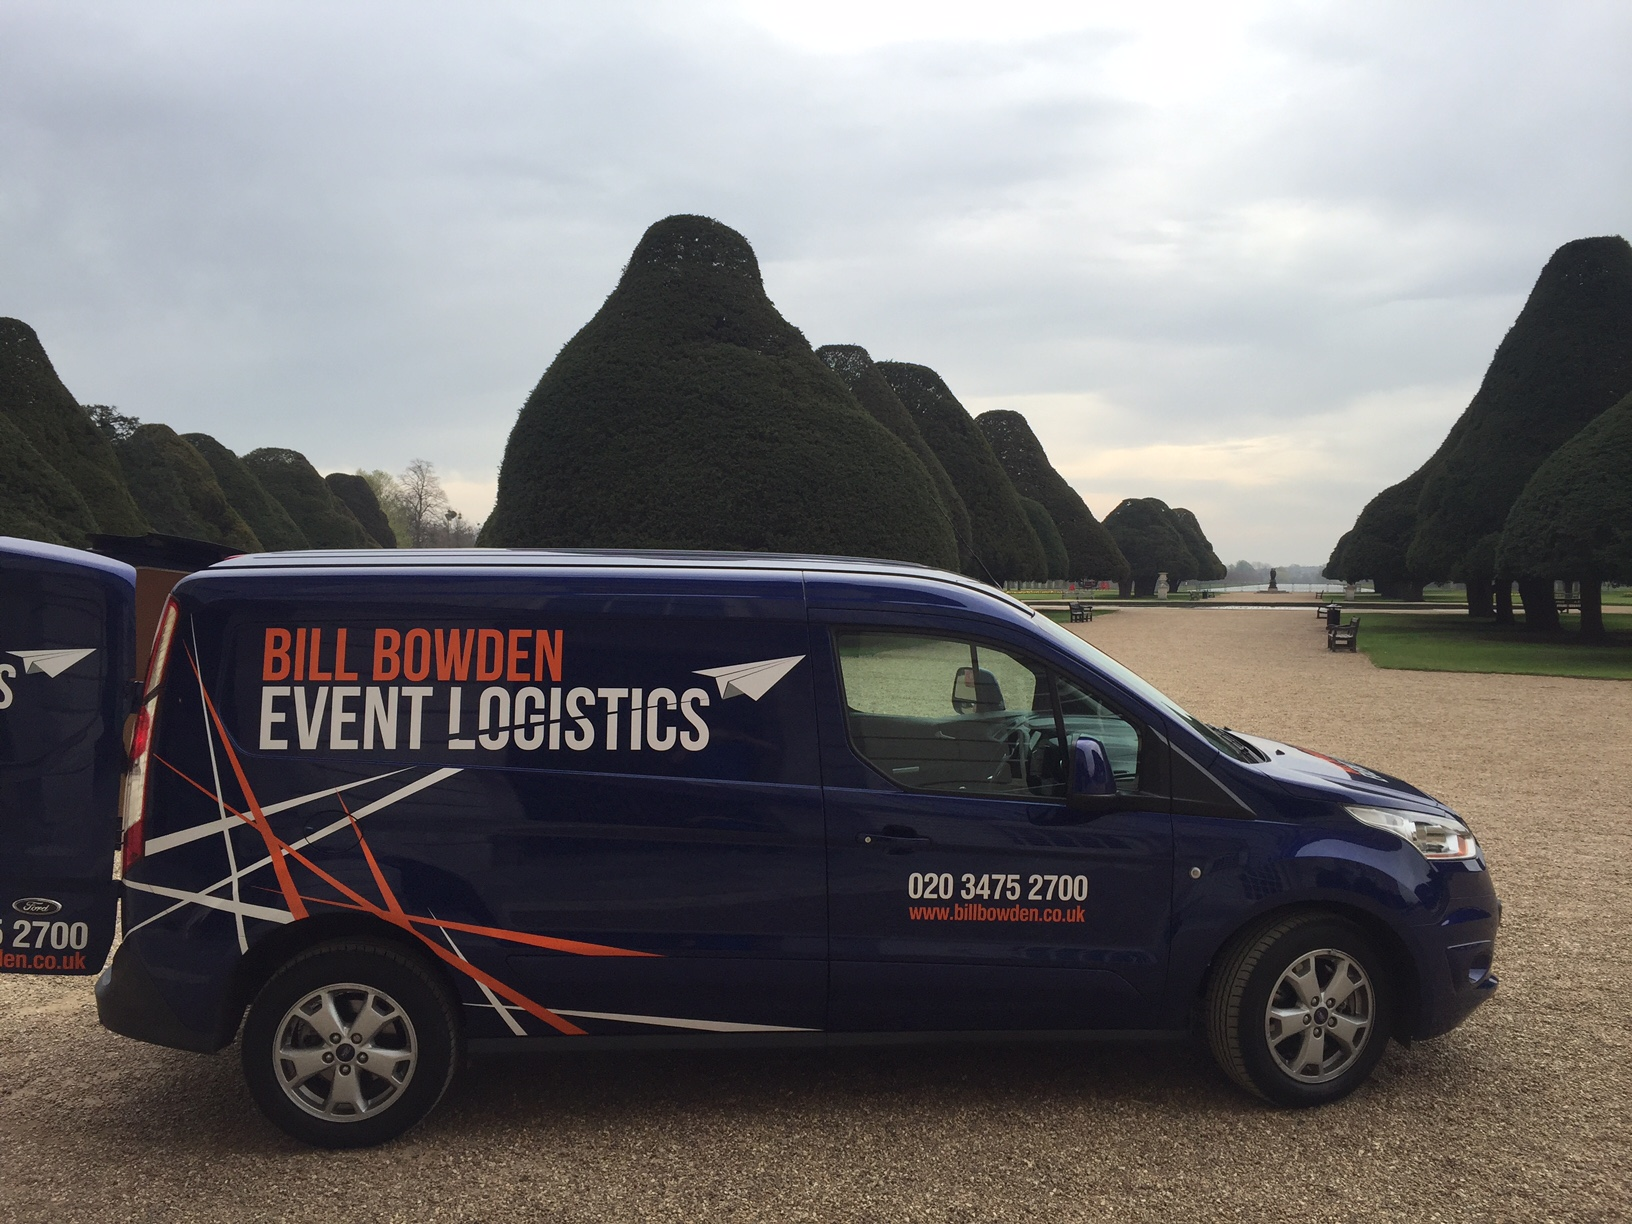 Bill Bowden Event Logistics van at Hampton Court